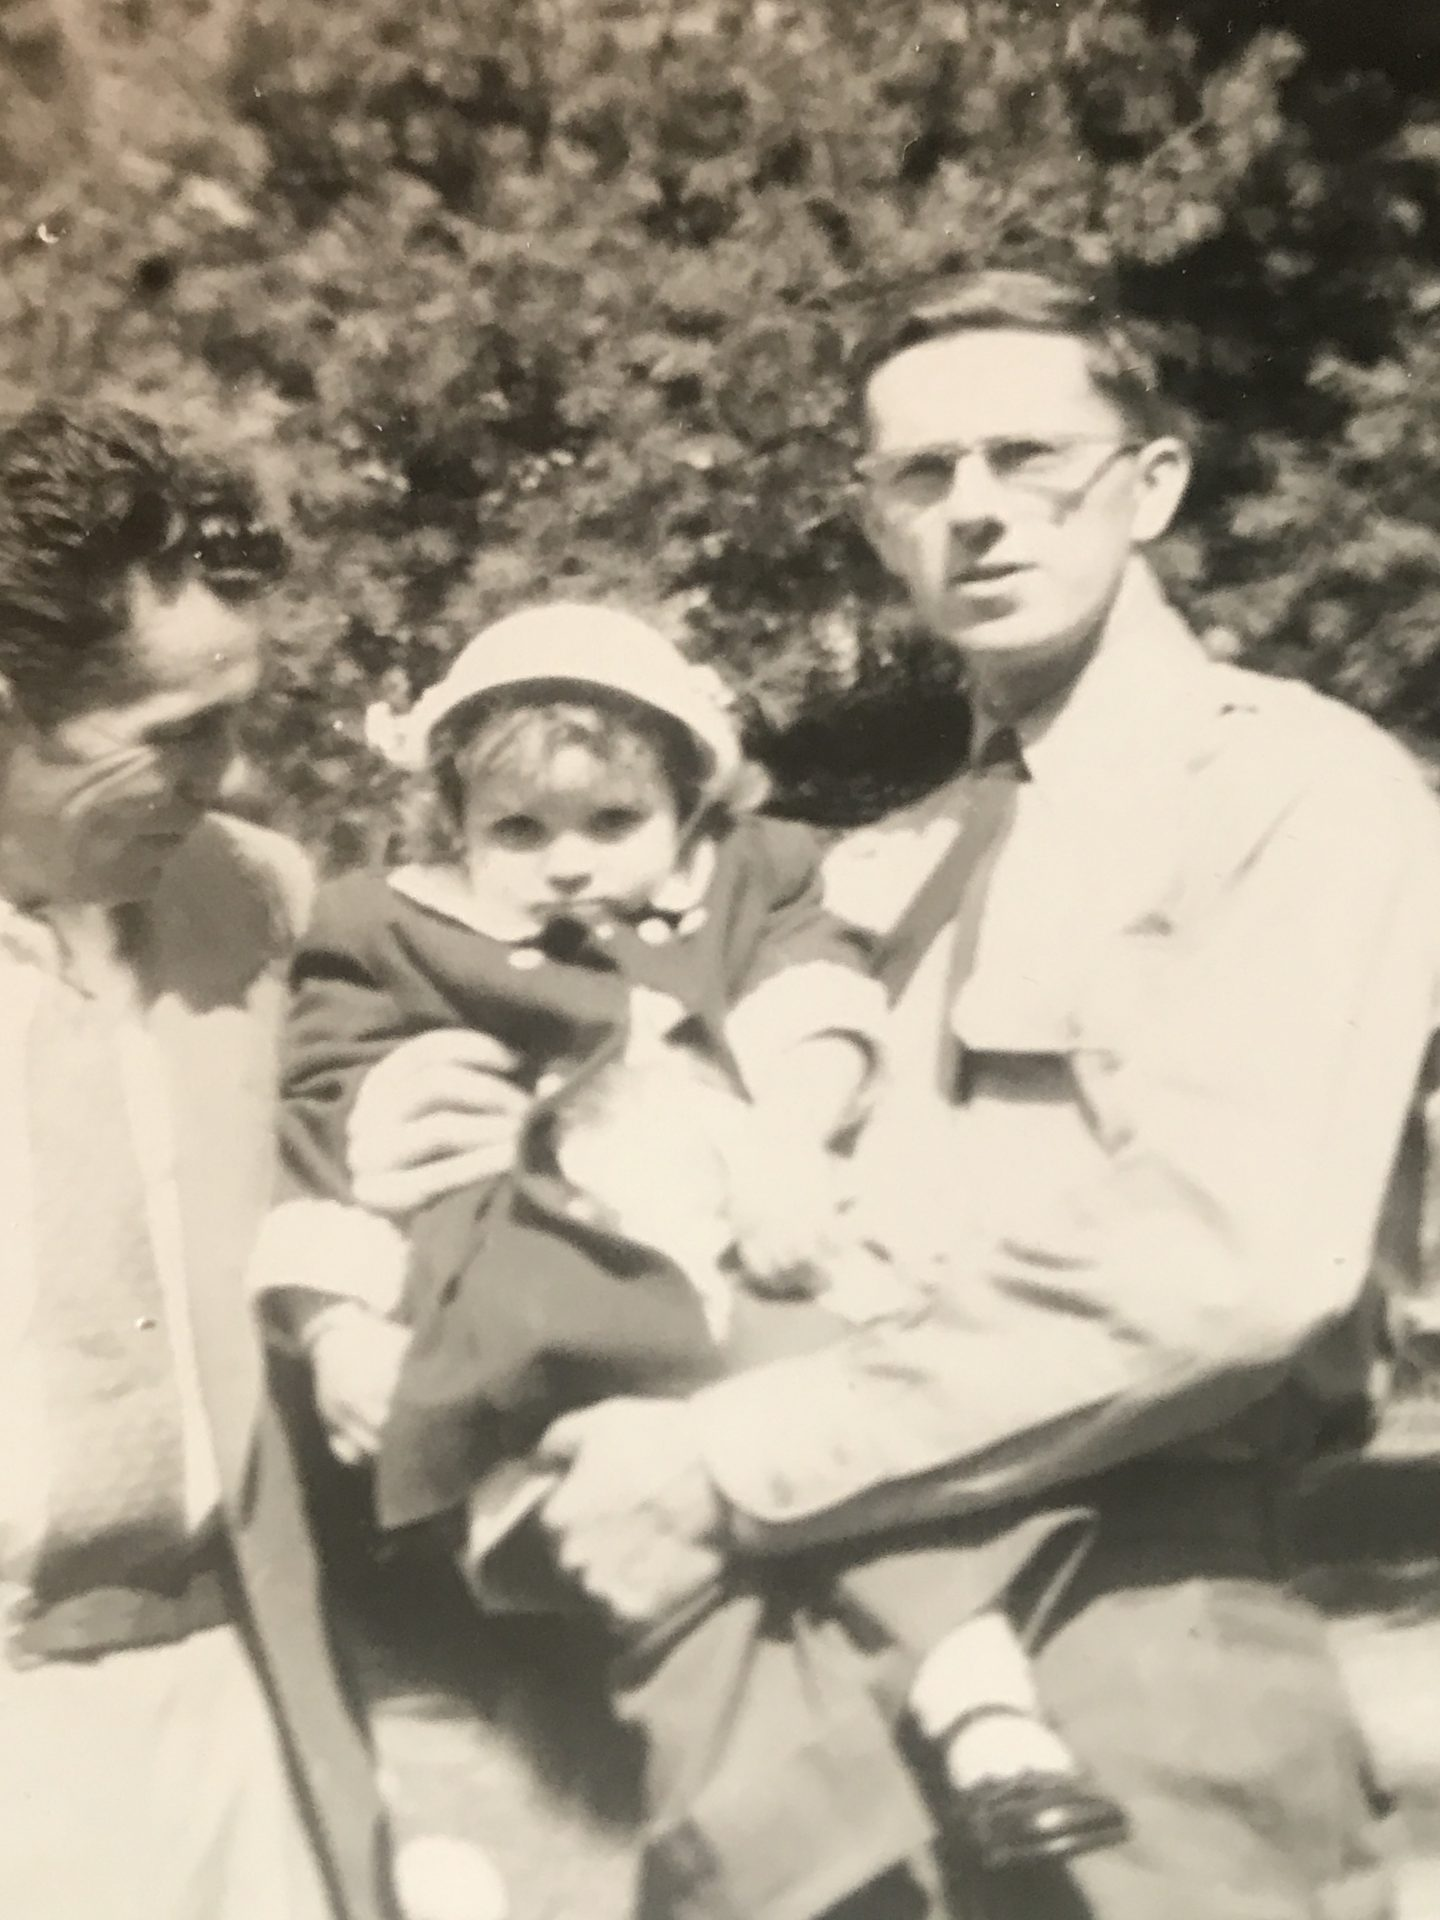 My beautiful Godfather/Uncle,<br /> Richard holding me,Robbie (Roberta)1954 with Rodney.